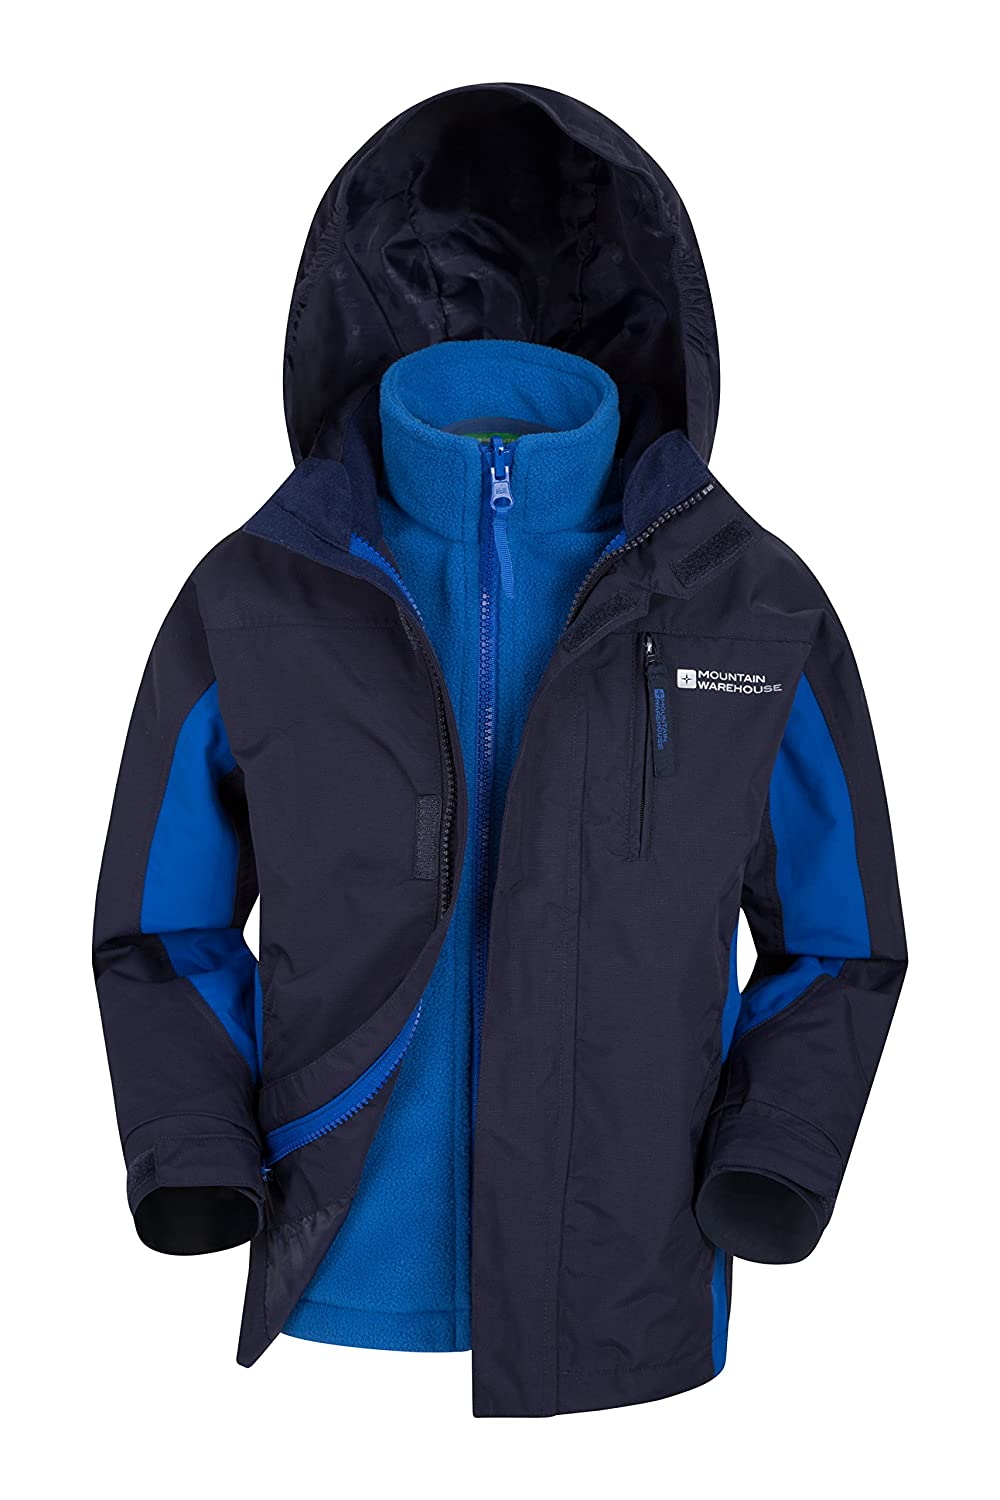 Mountain Warehouse Cannonball 3-in-1 Kids Jacket -Childrens Summer Coat